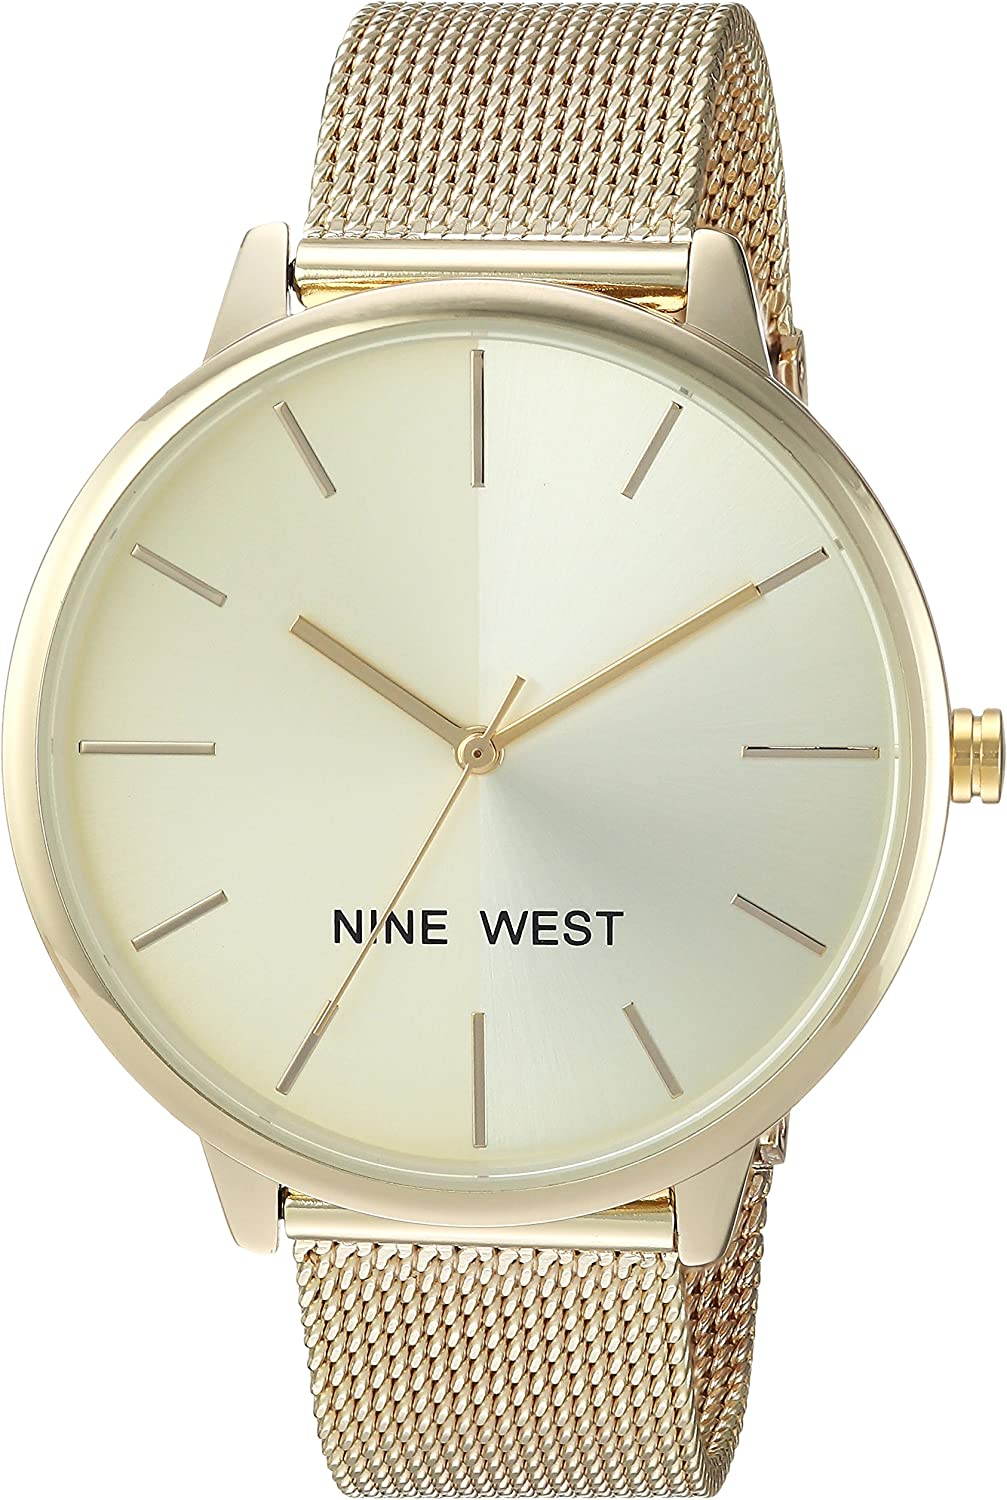 Nine West Women's At the price National uniform free shipping NW 1981 Bracelet Watch Mesh Sunray Dial